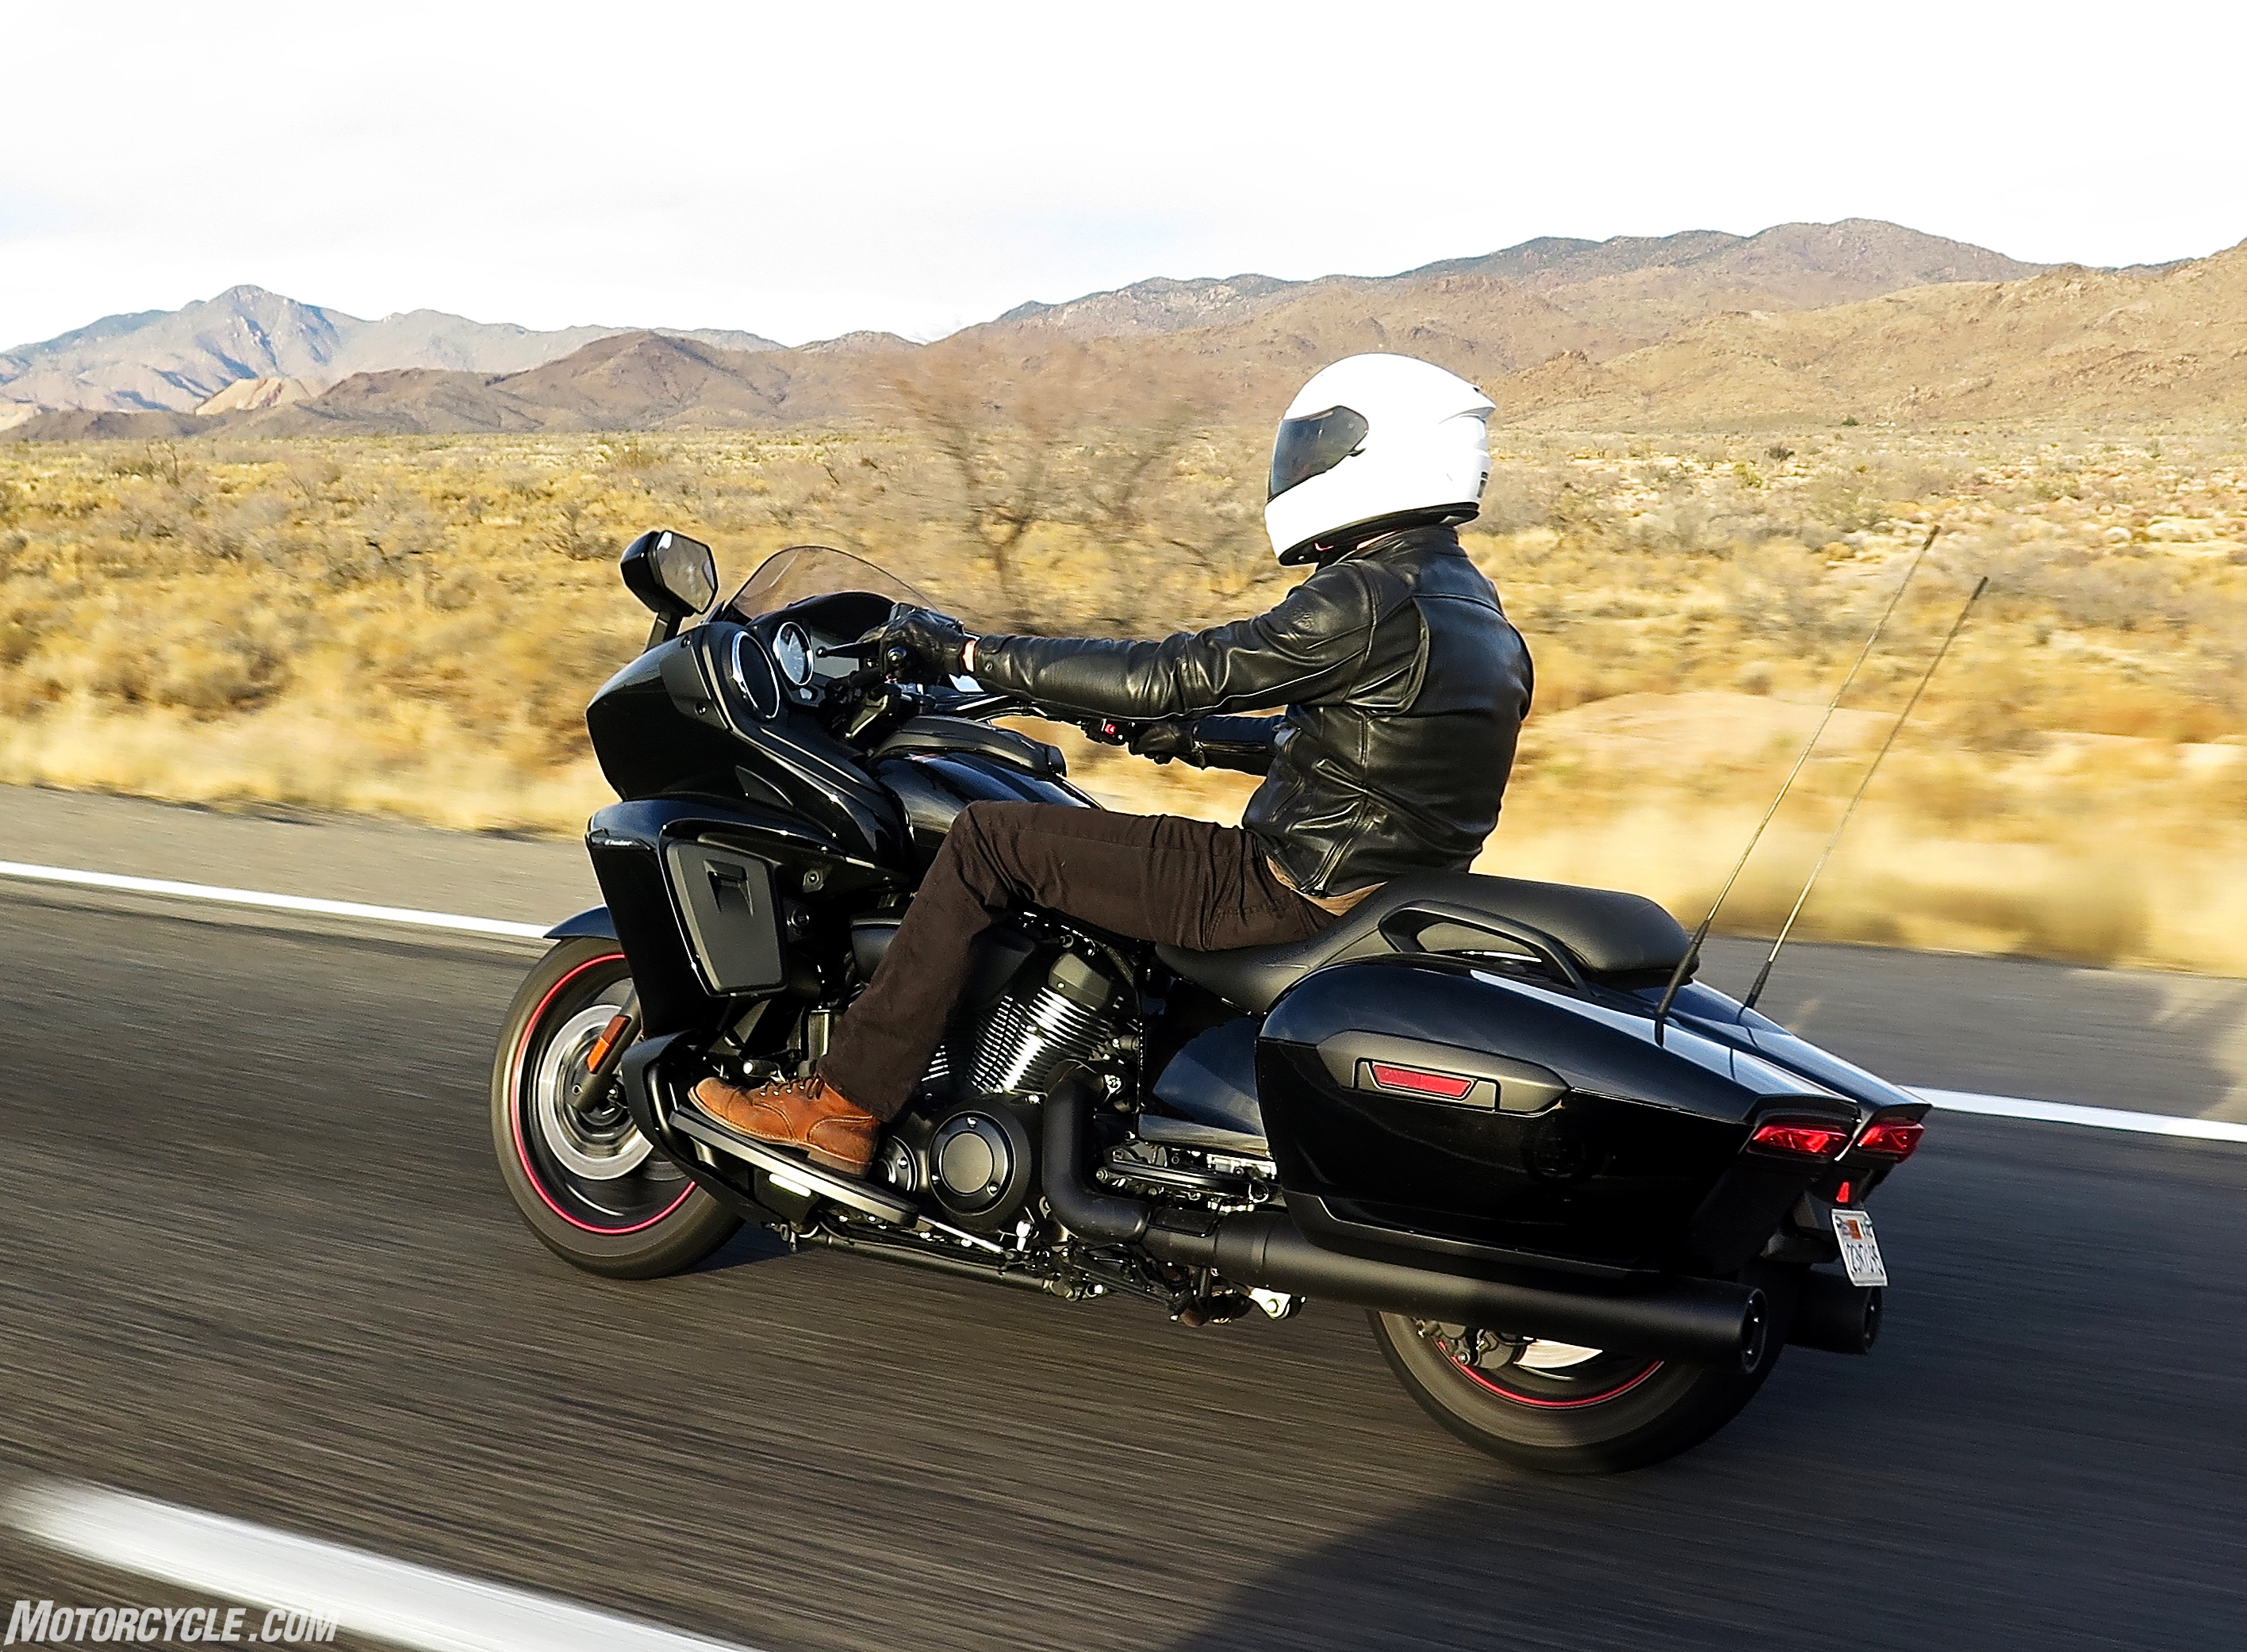 Mo Tested Alpinestars Brera Leather Jacket Review